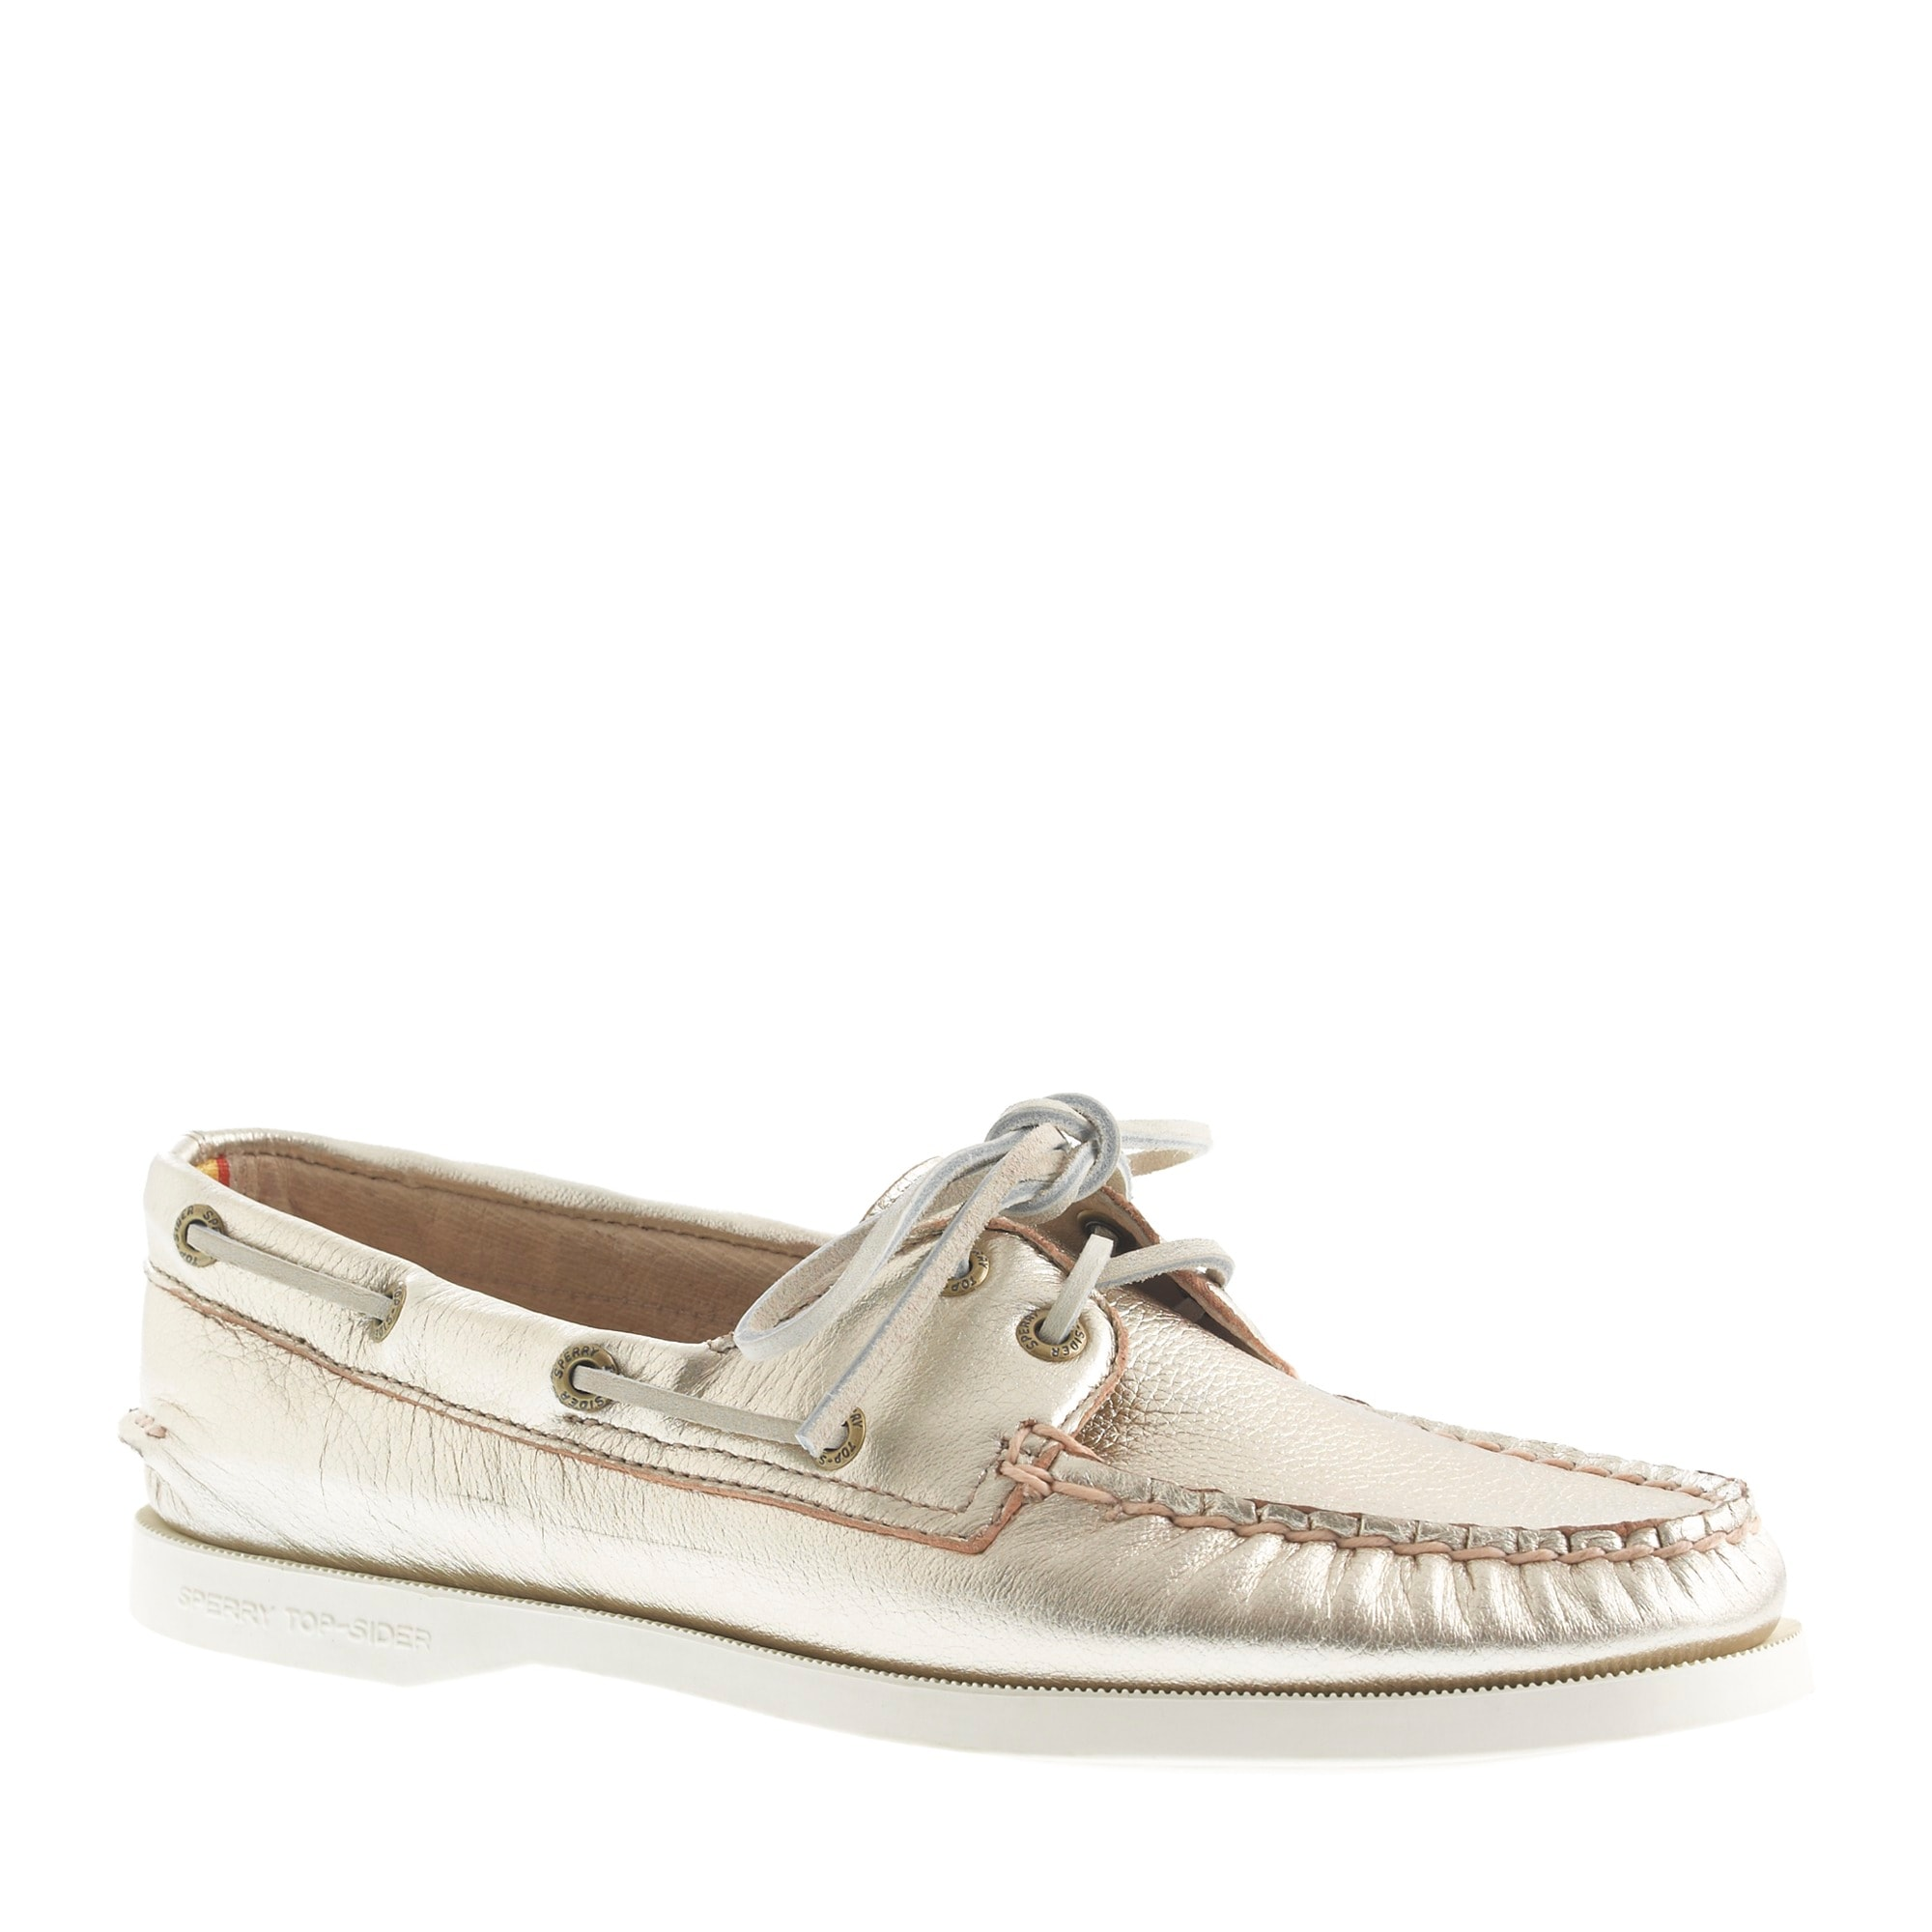 sperry top-sider® for j.crew authentic original 2-eye metallic boat shoes :